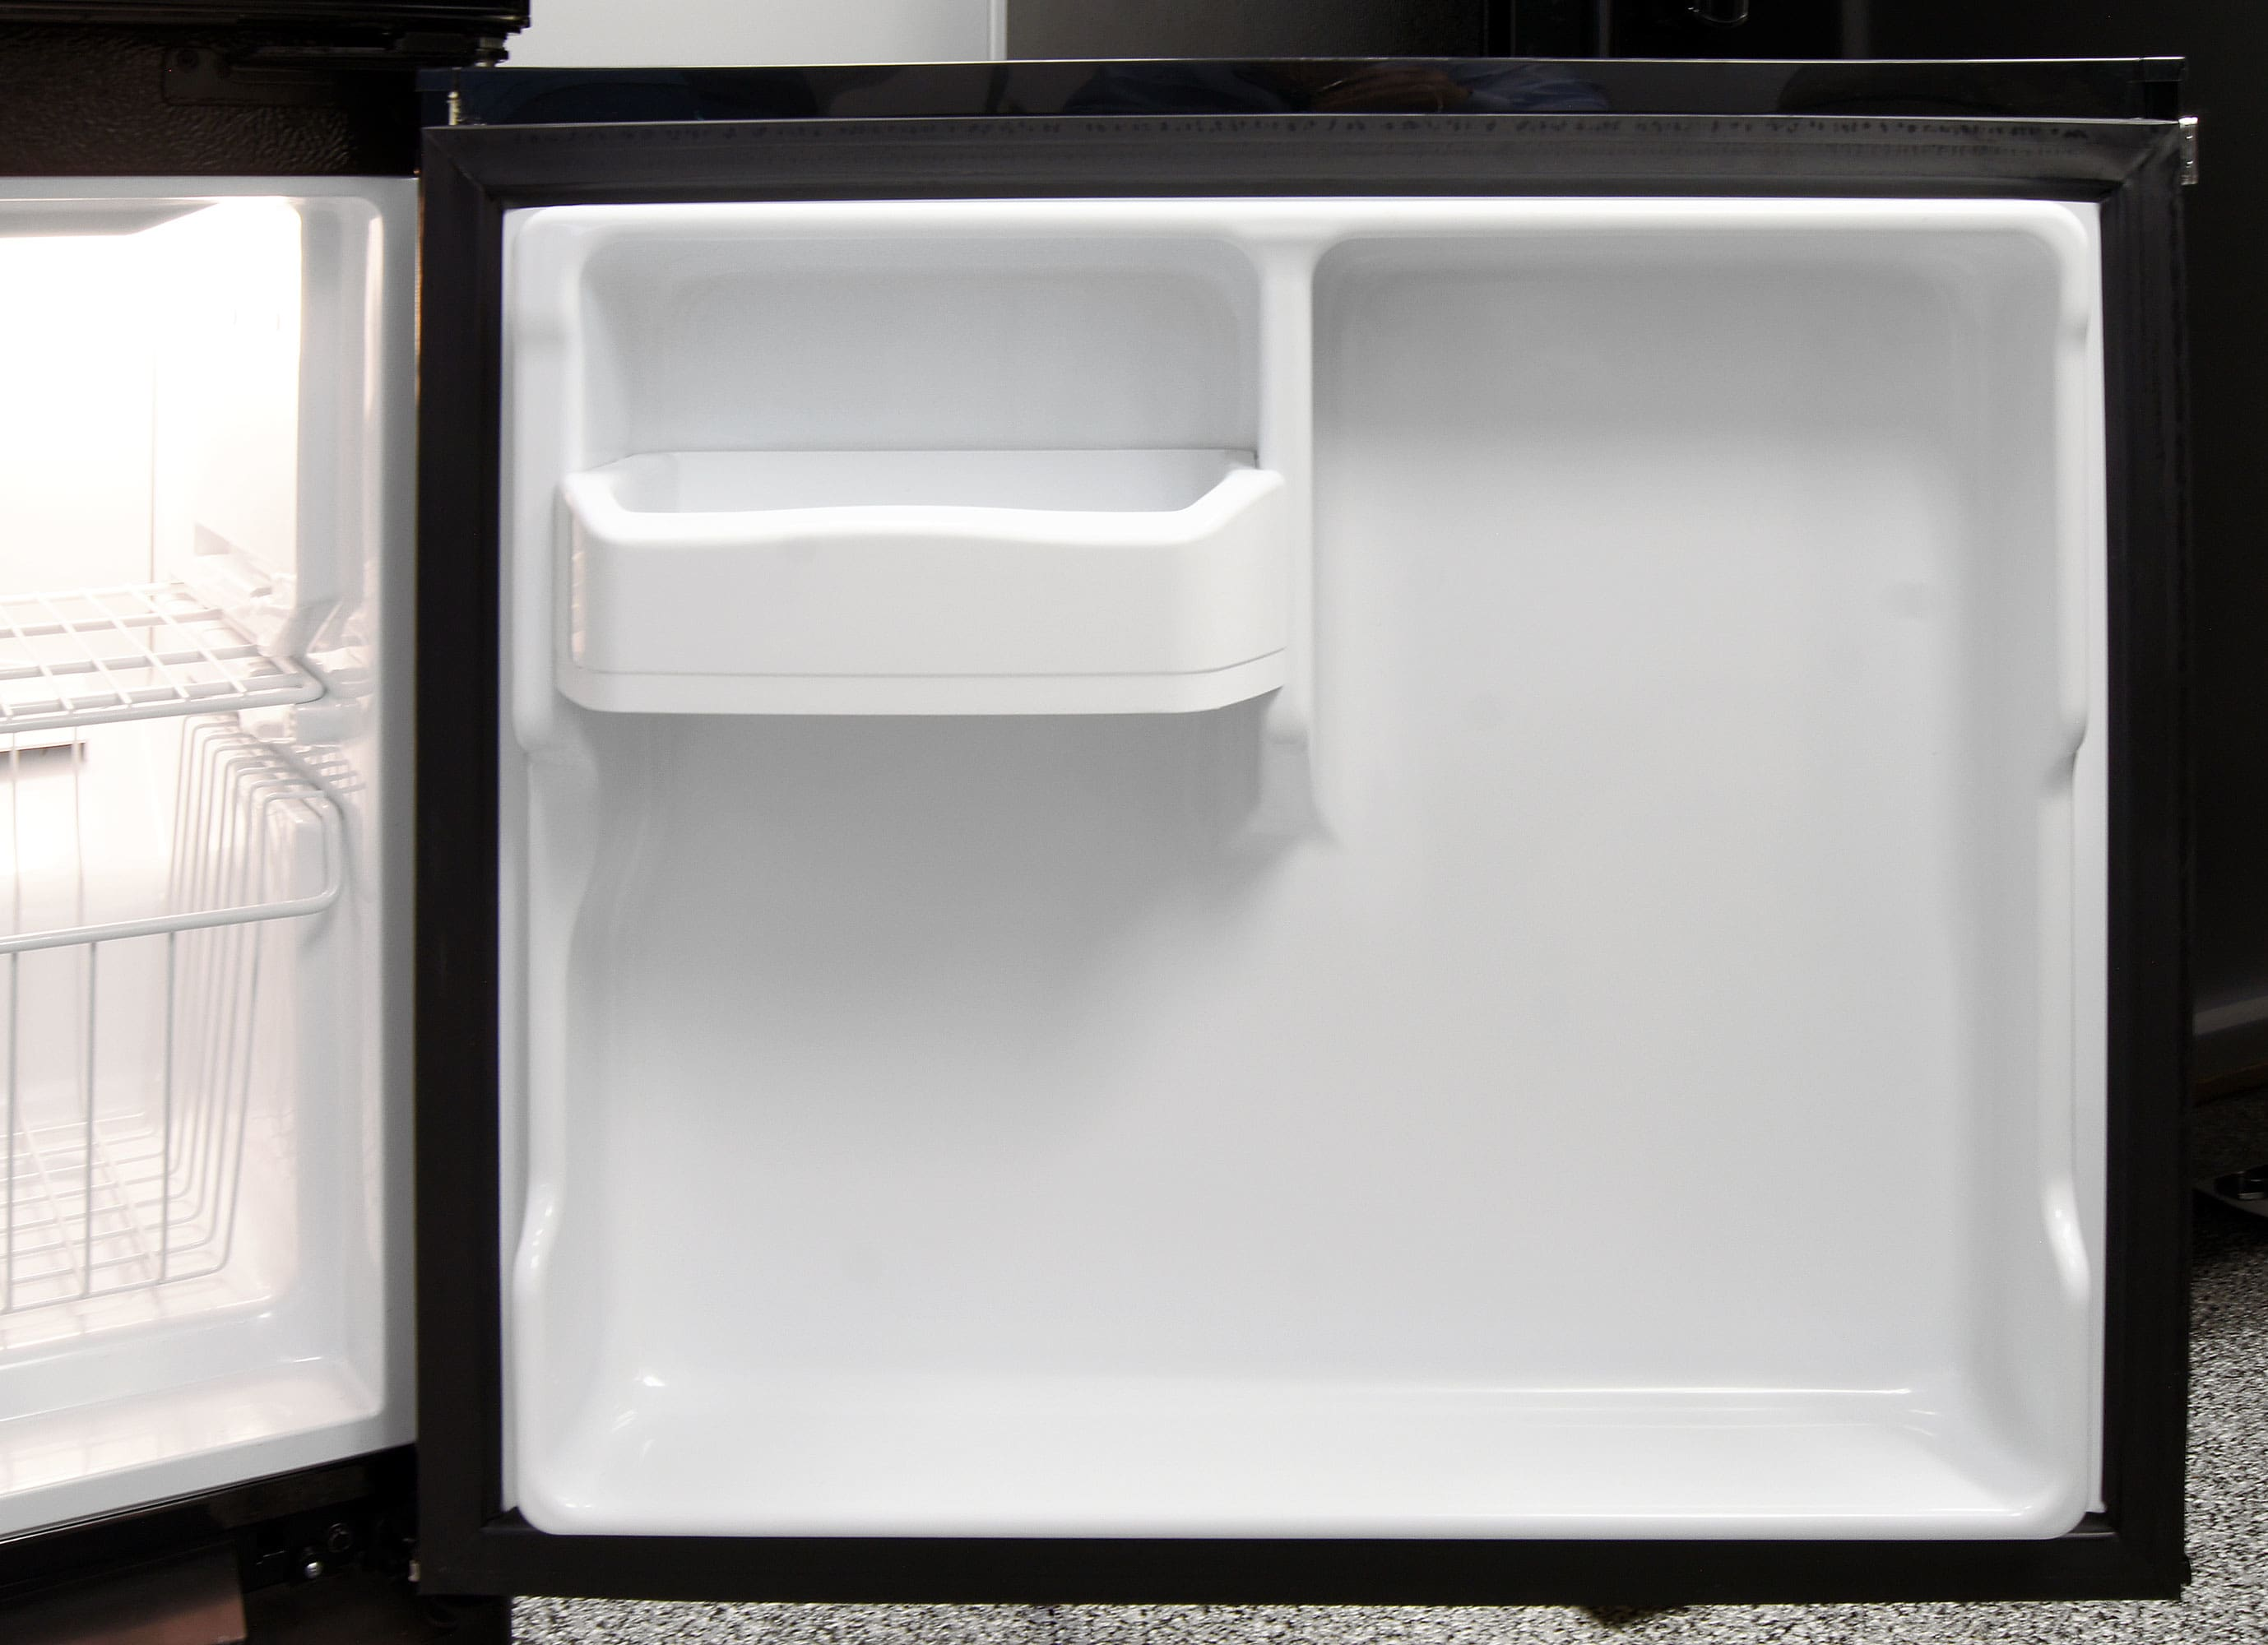 The GE Artistry ABE20EGEBS's freezer door gets just one lonely bucket shelf for supplemental storage.